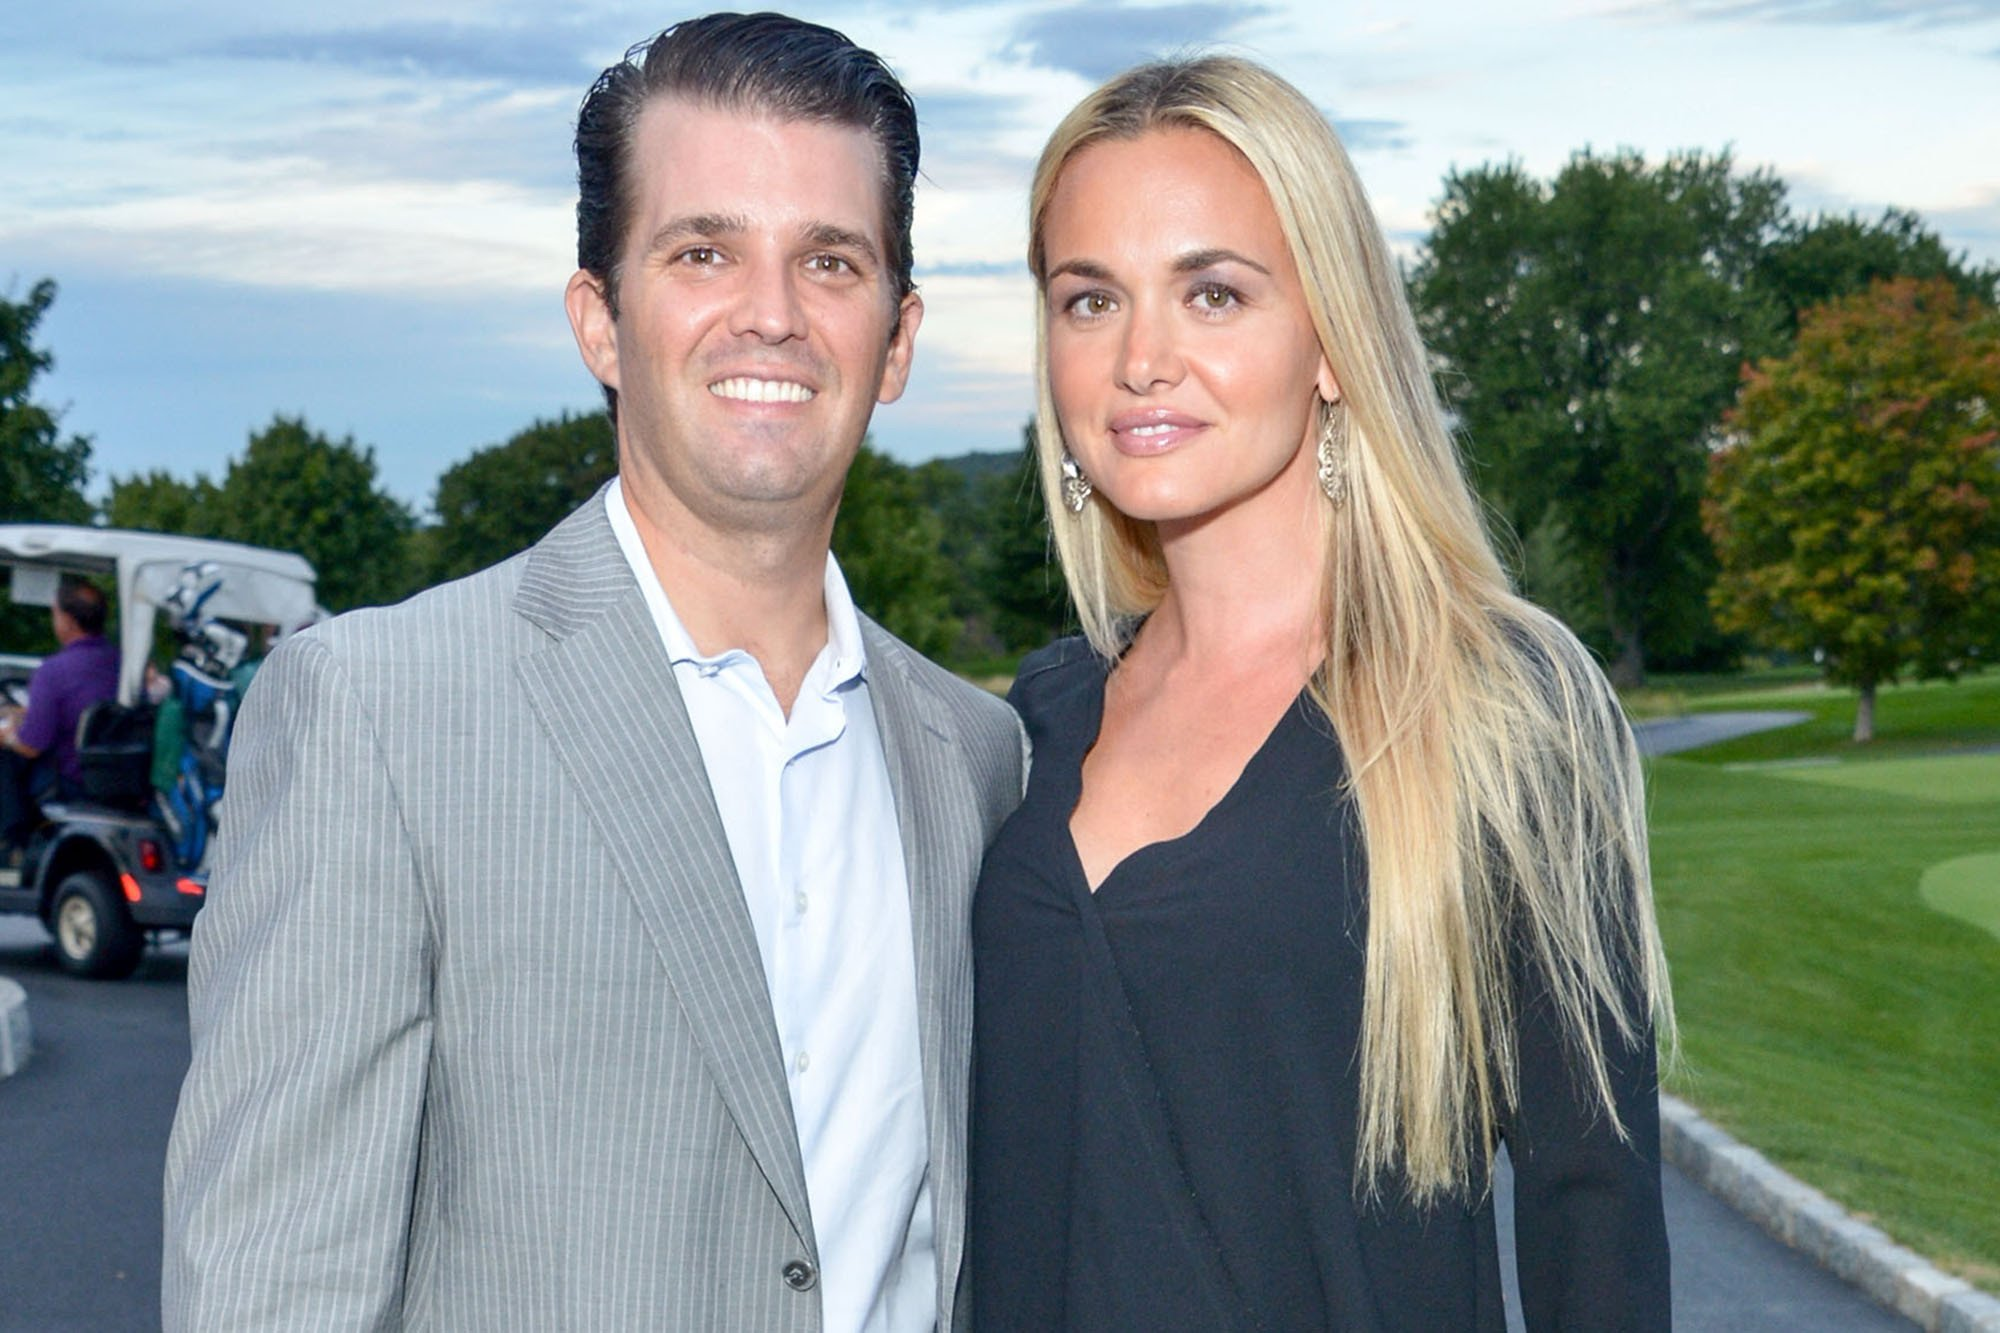 white powder vanessa trump wife of donald trump jr 3